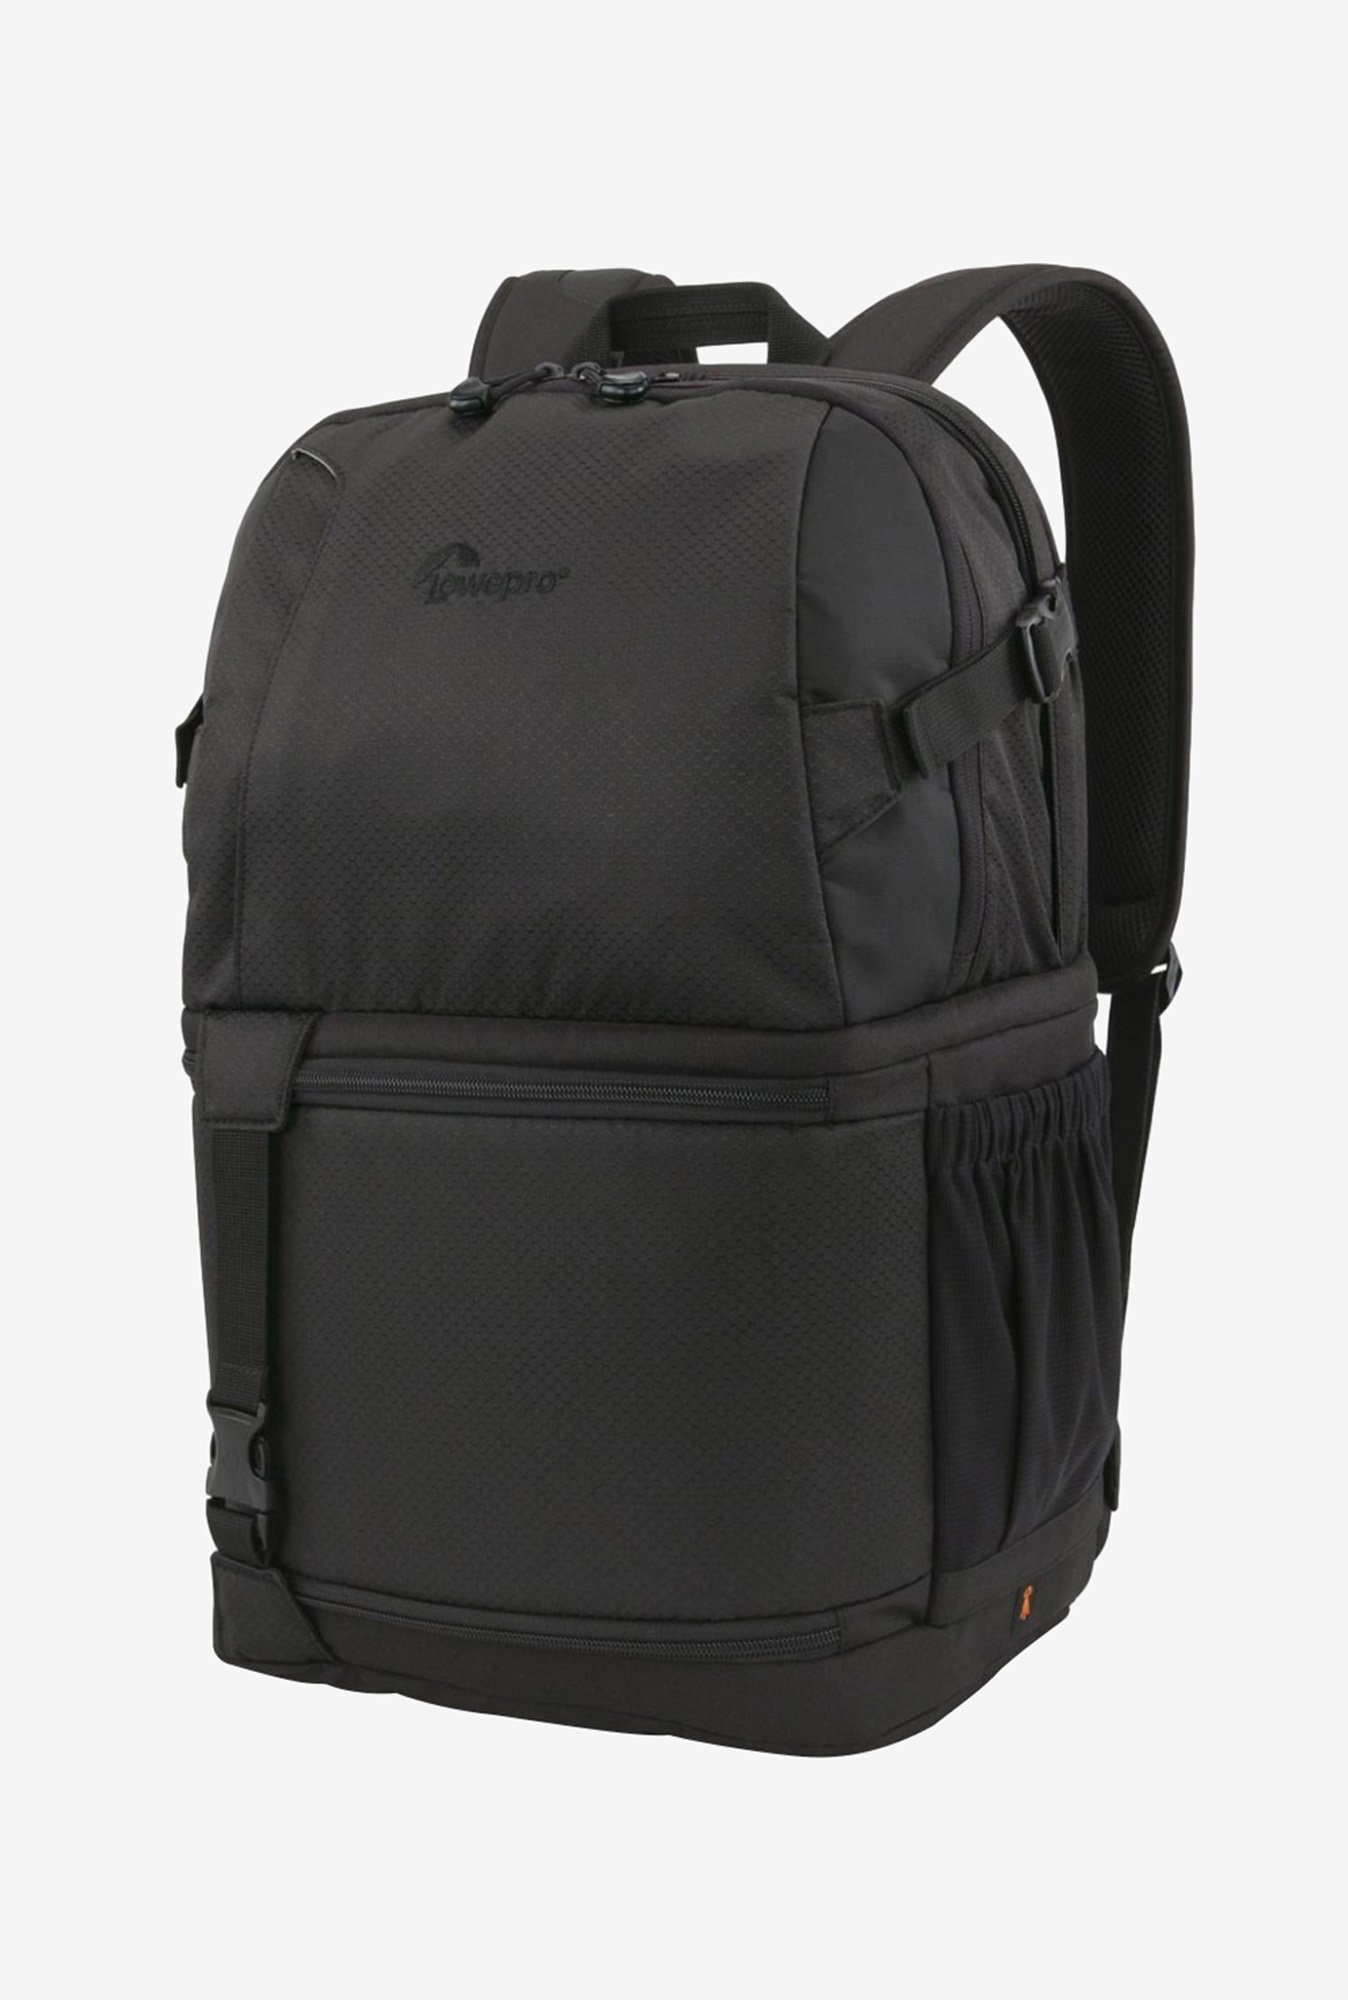 LowePro Video FP 350 AW Fastpack Black